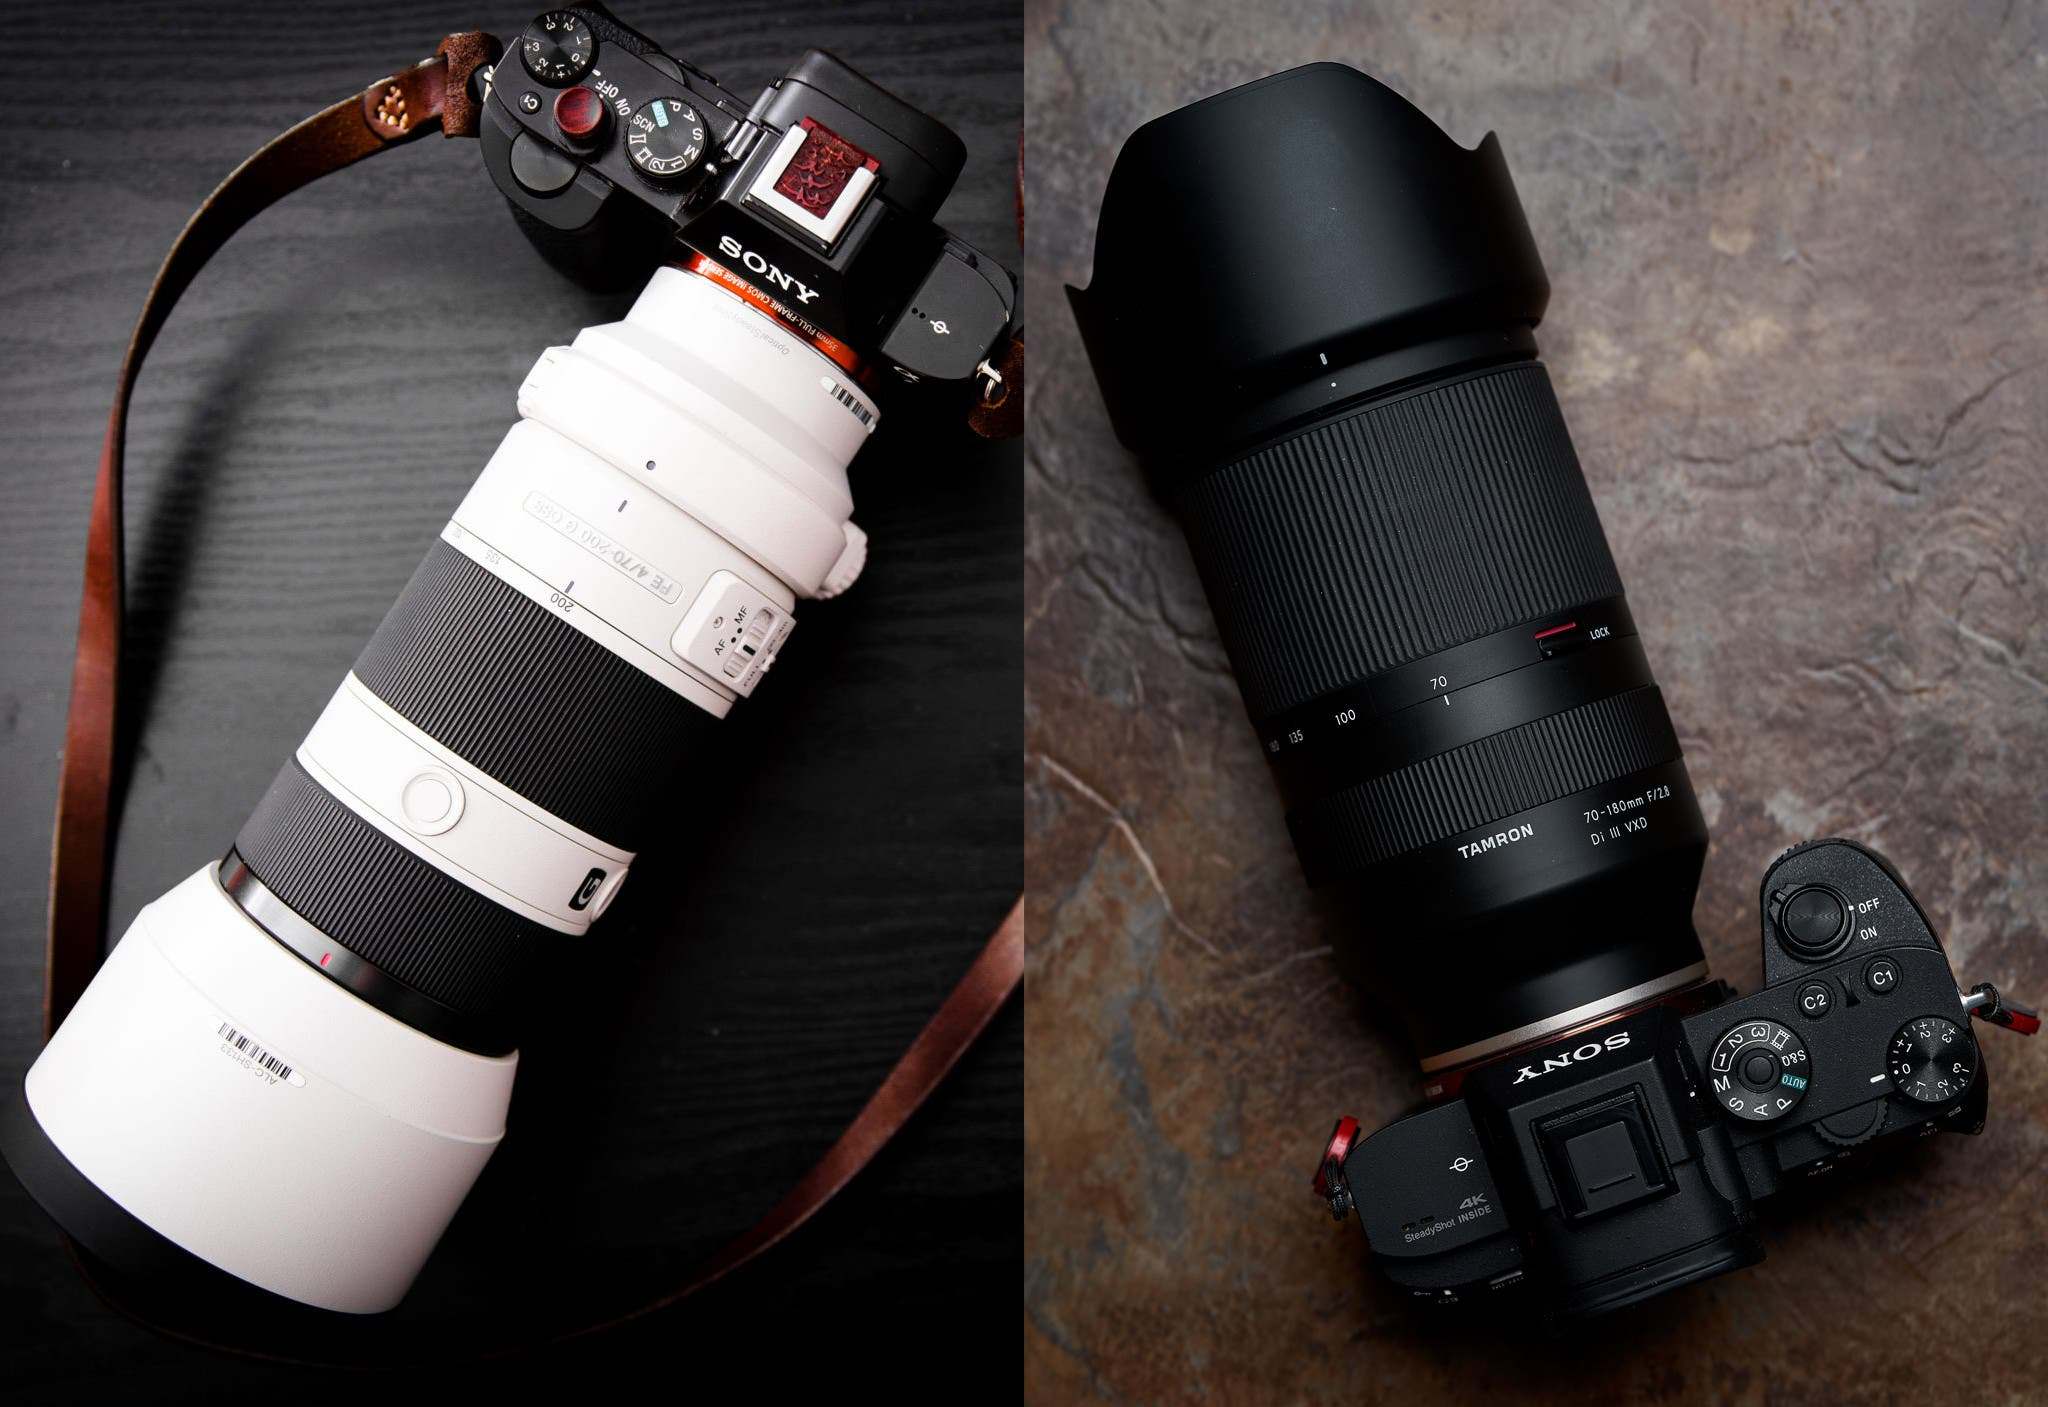 Comparison: Tamron 70-180mm F2.8 vs Sony 70-200mm F2.8 G Master